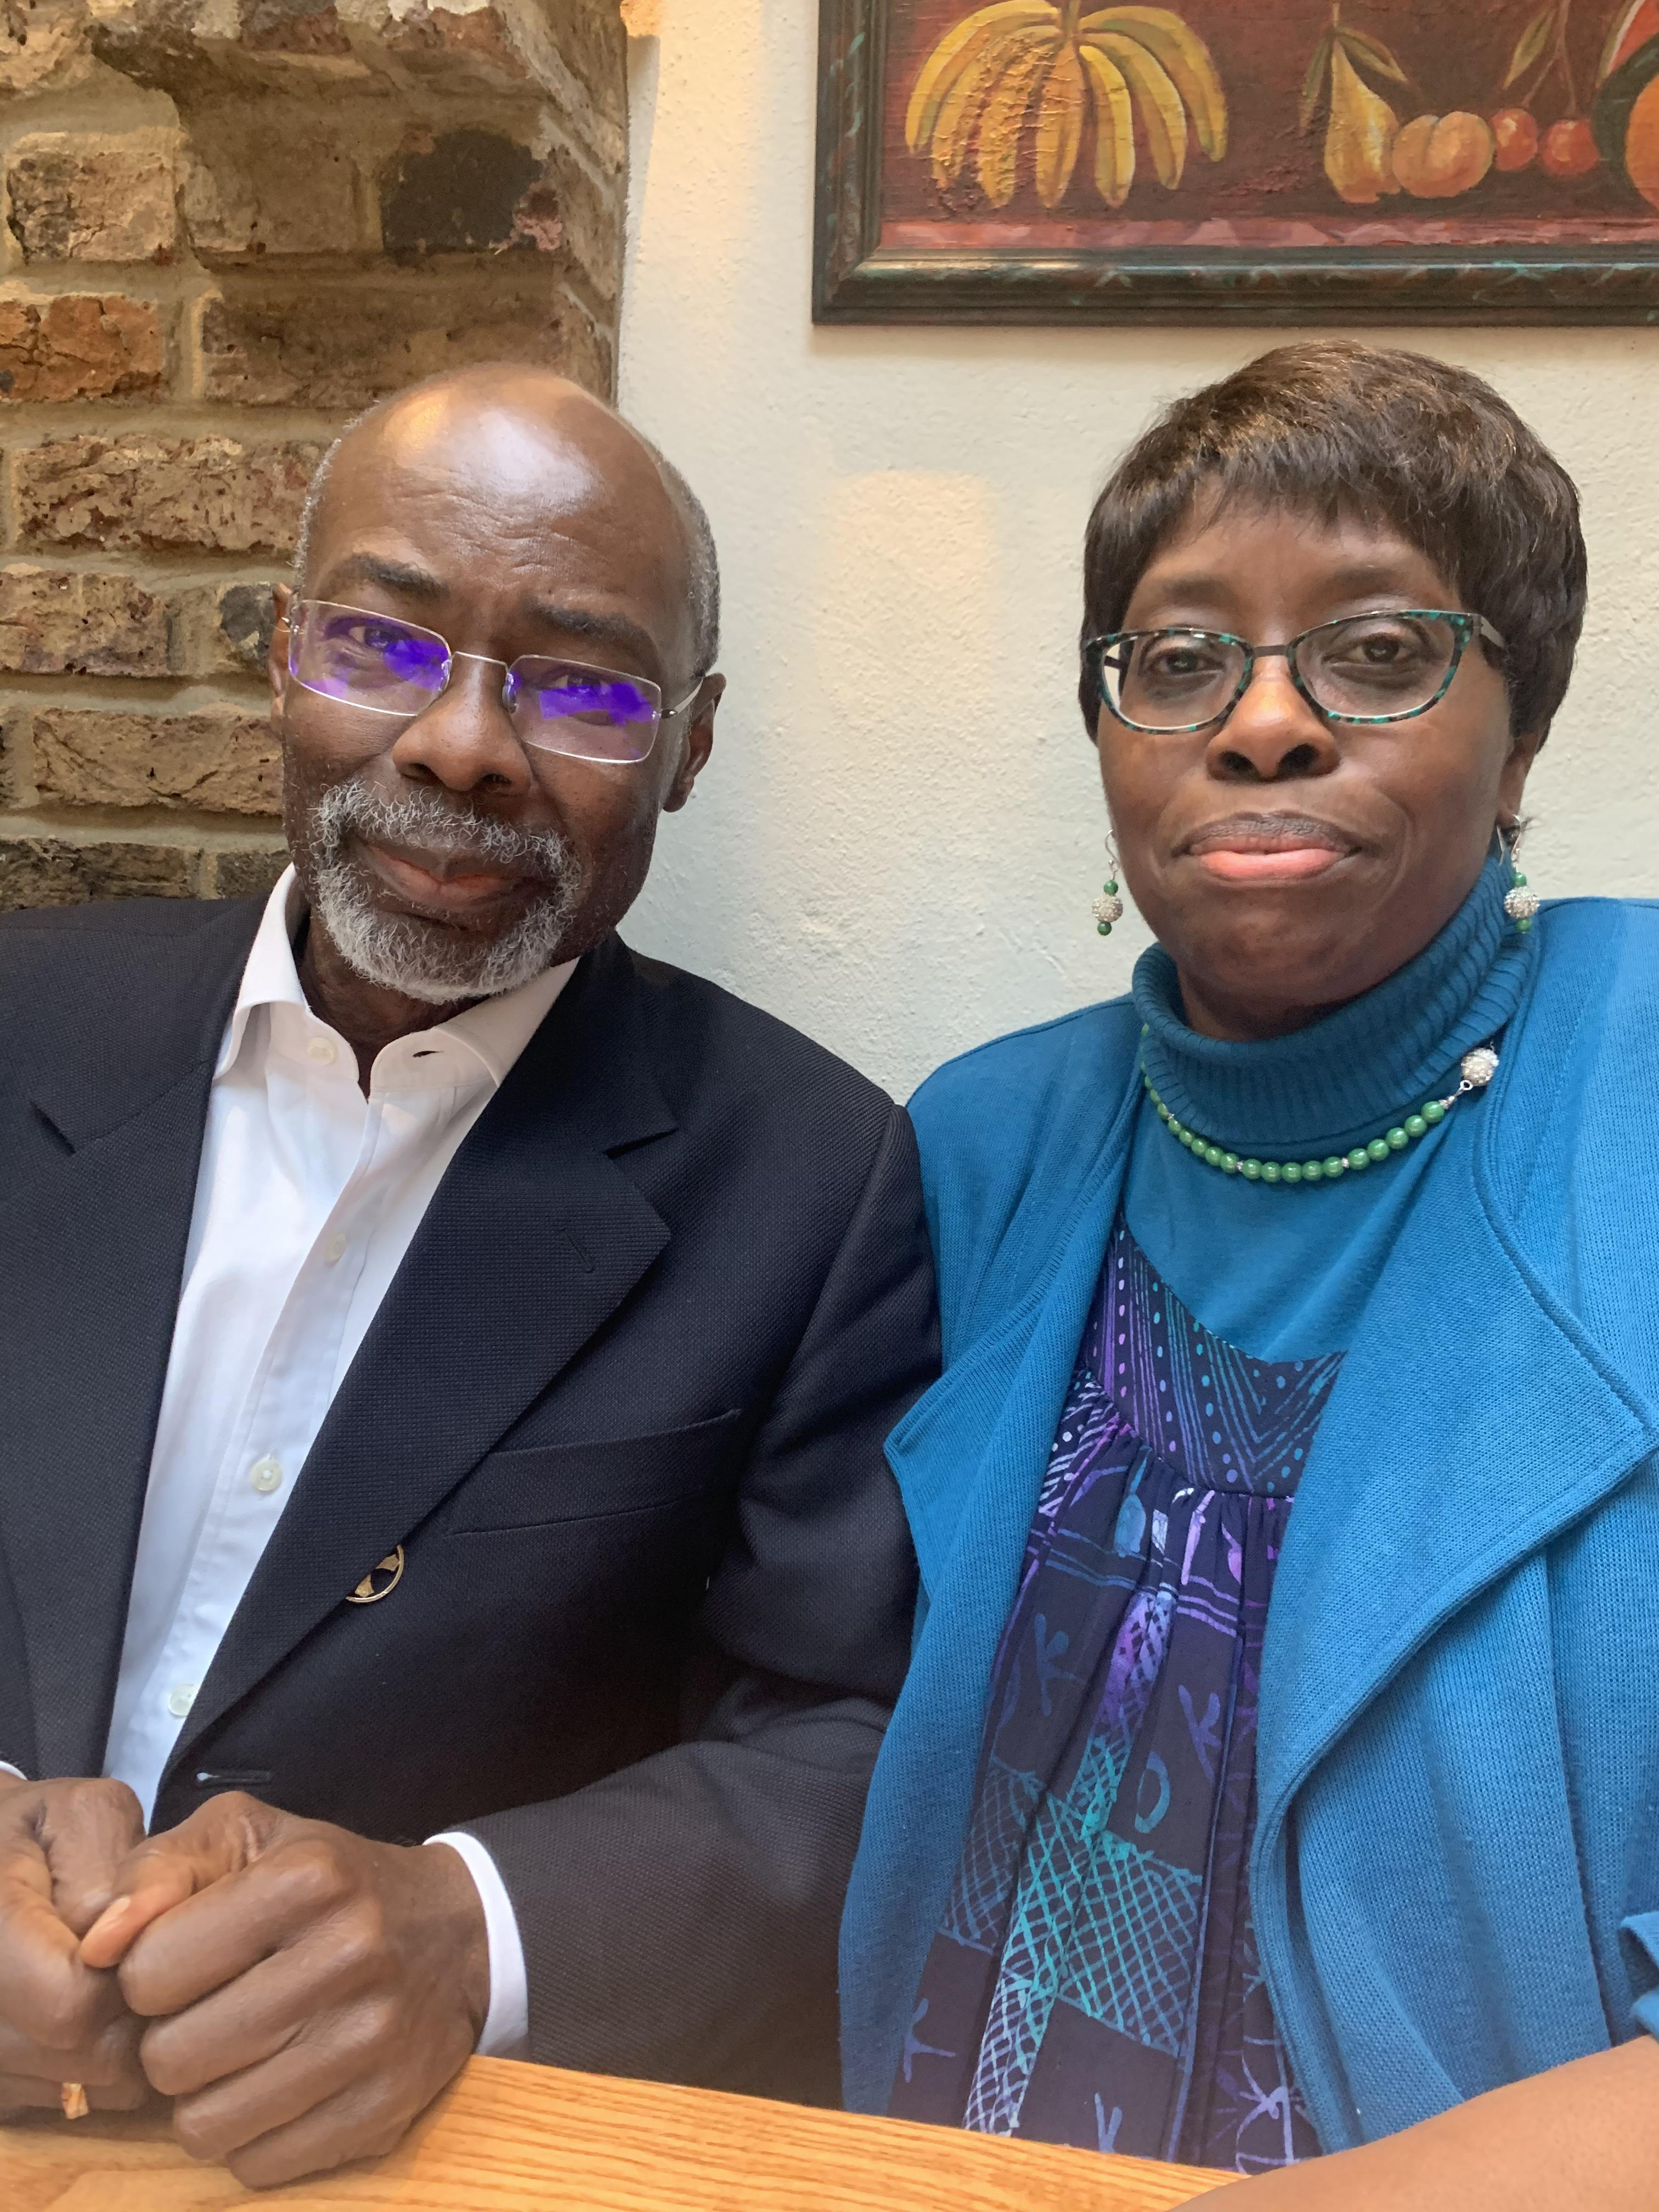 My last memory of Uncle Rodney - when he & Aunty Bukky took me out for lunch because I couldn't be there for their birthdays. He was always very kind and easy to talk to, or even just to be silent with. I'm grateful I had the opportunity to know him.